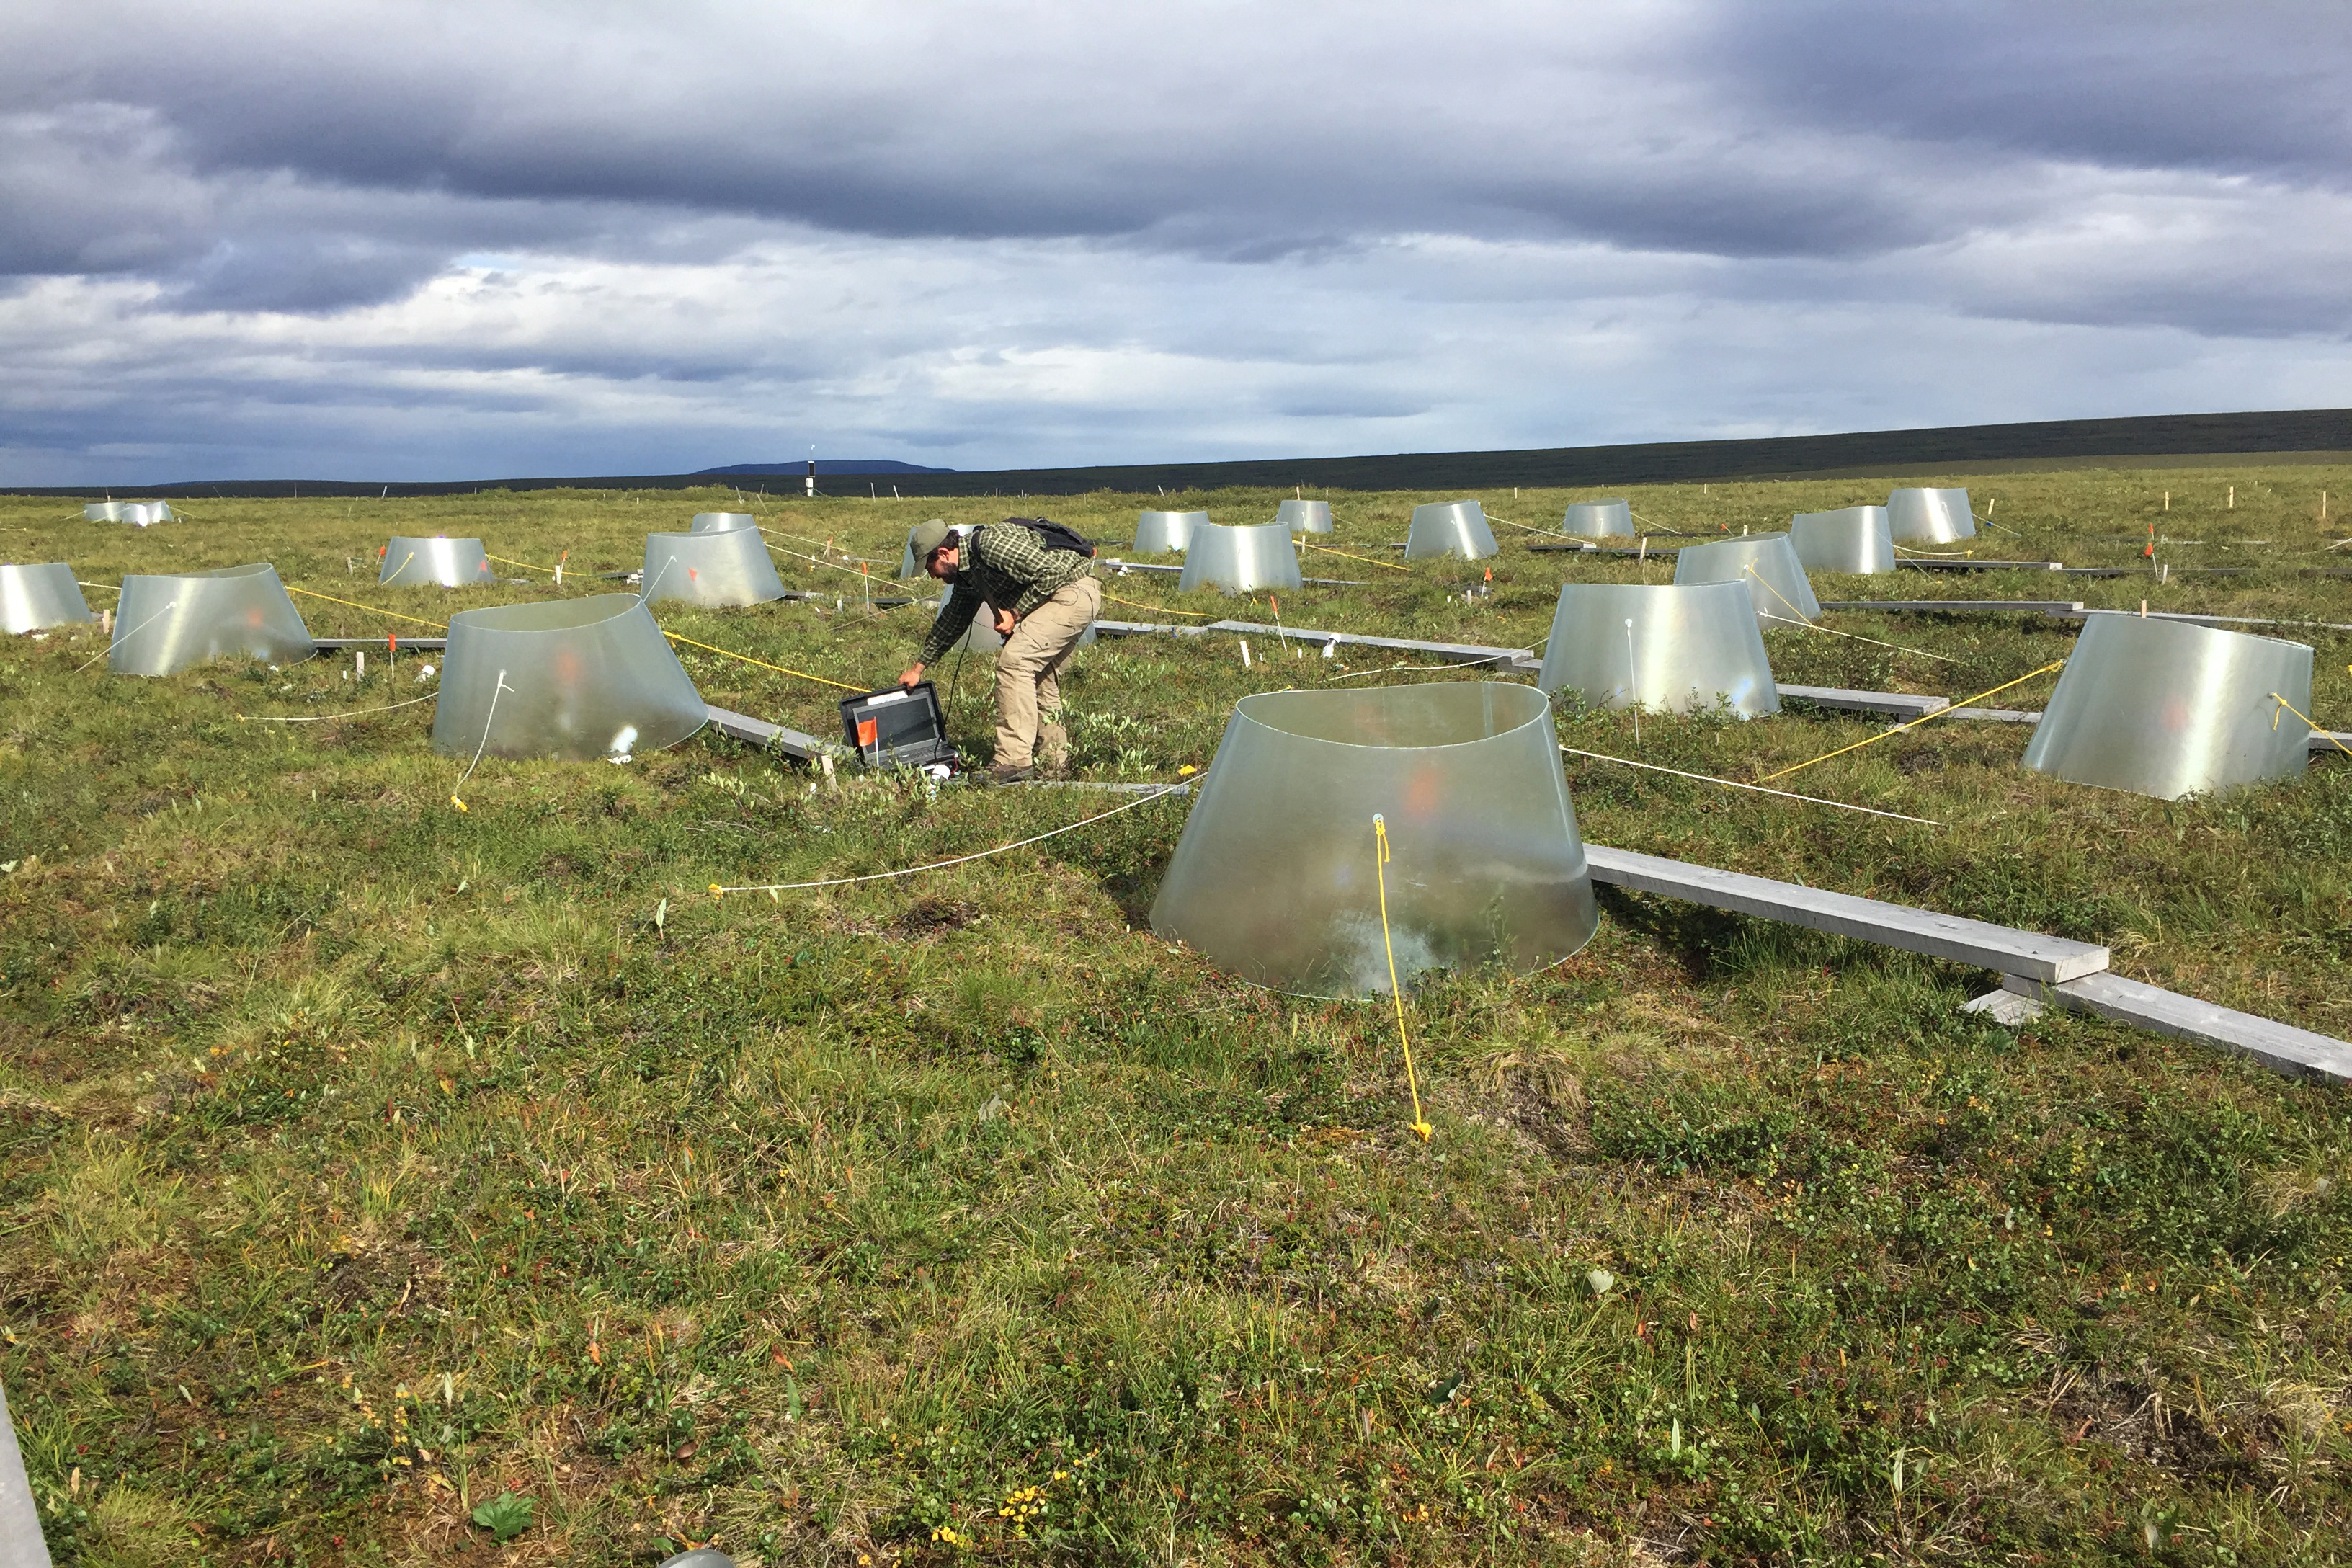 Jon Gewirtzman uses a special tool to look at deep plant roots in an experimental field at Toolik Field Station on August 1, 2017. (Kelsey Lindsey)